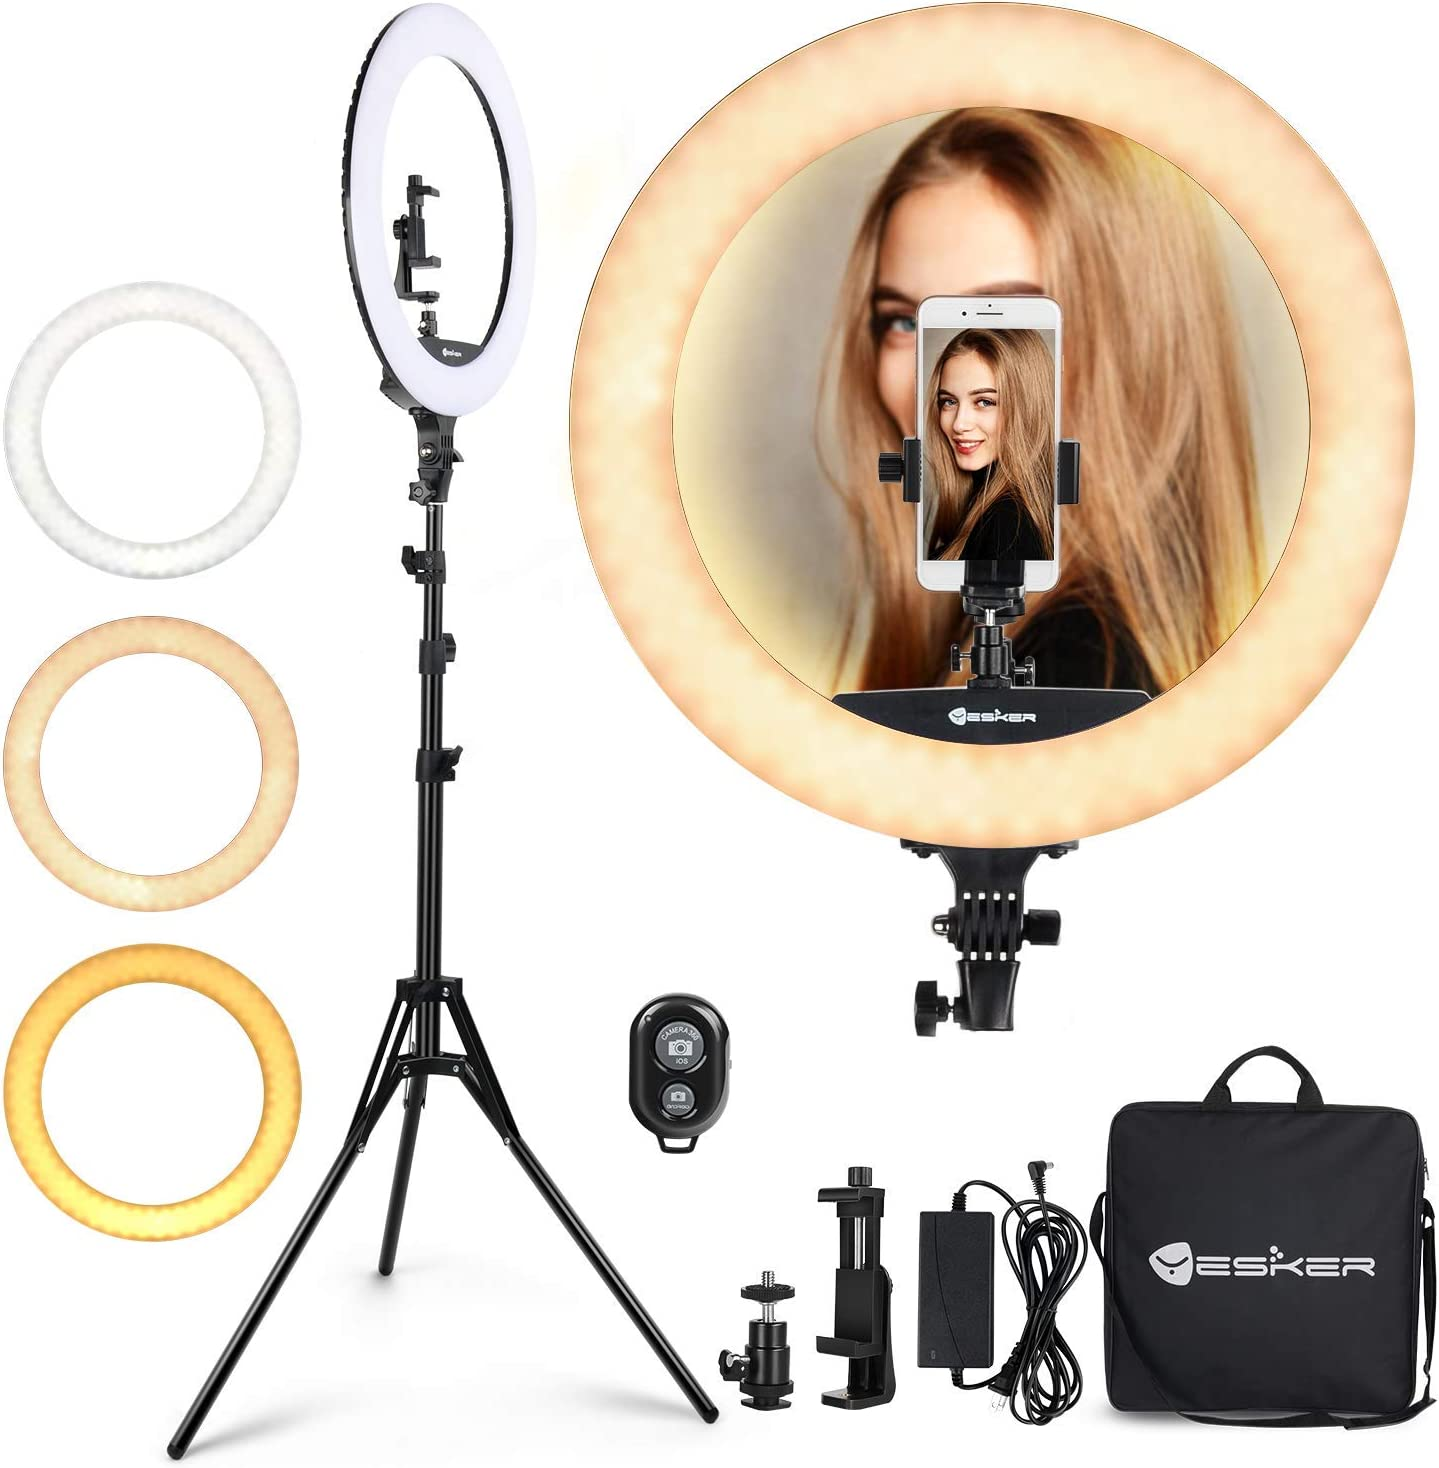 Ring Light Set 18 inch Dimmable Color Temperature 3200K-5600K LED Ring Light with 2M Height Adjustable Stand for YouTube Makeup Video Shooting Portrait Vlog Selfie US Stock